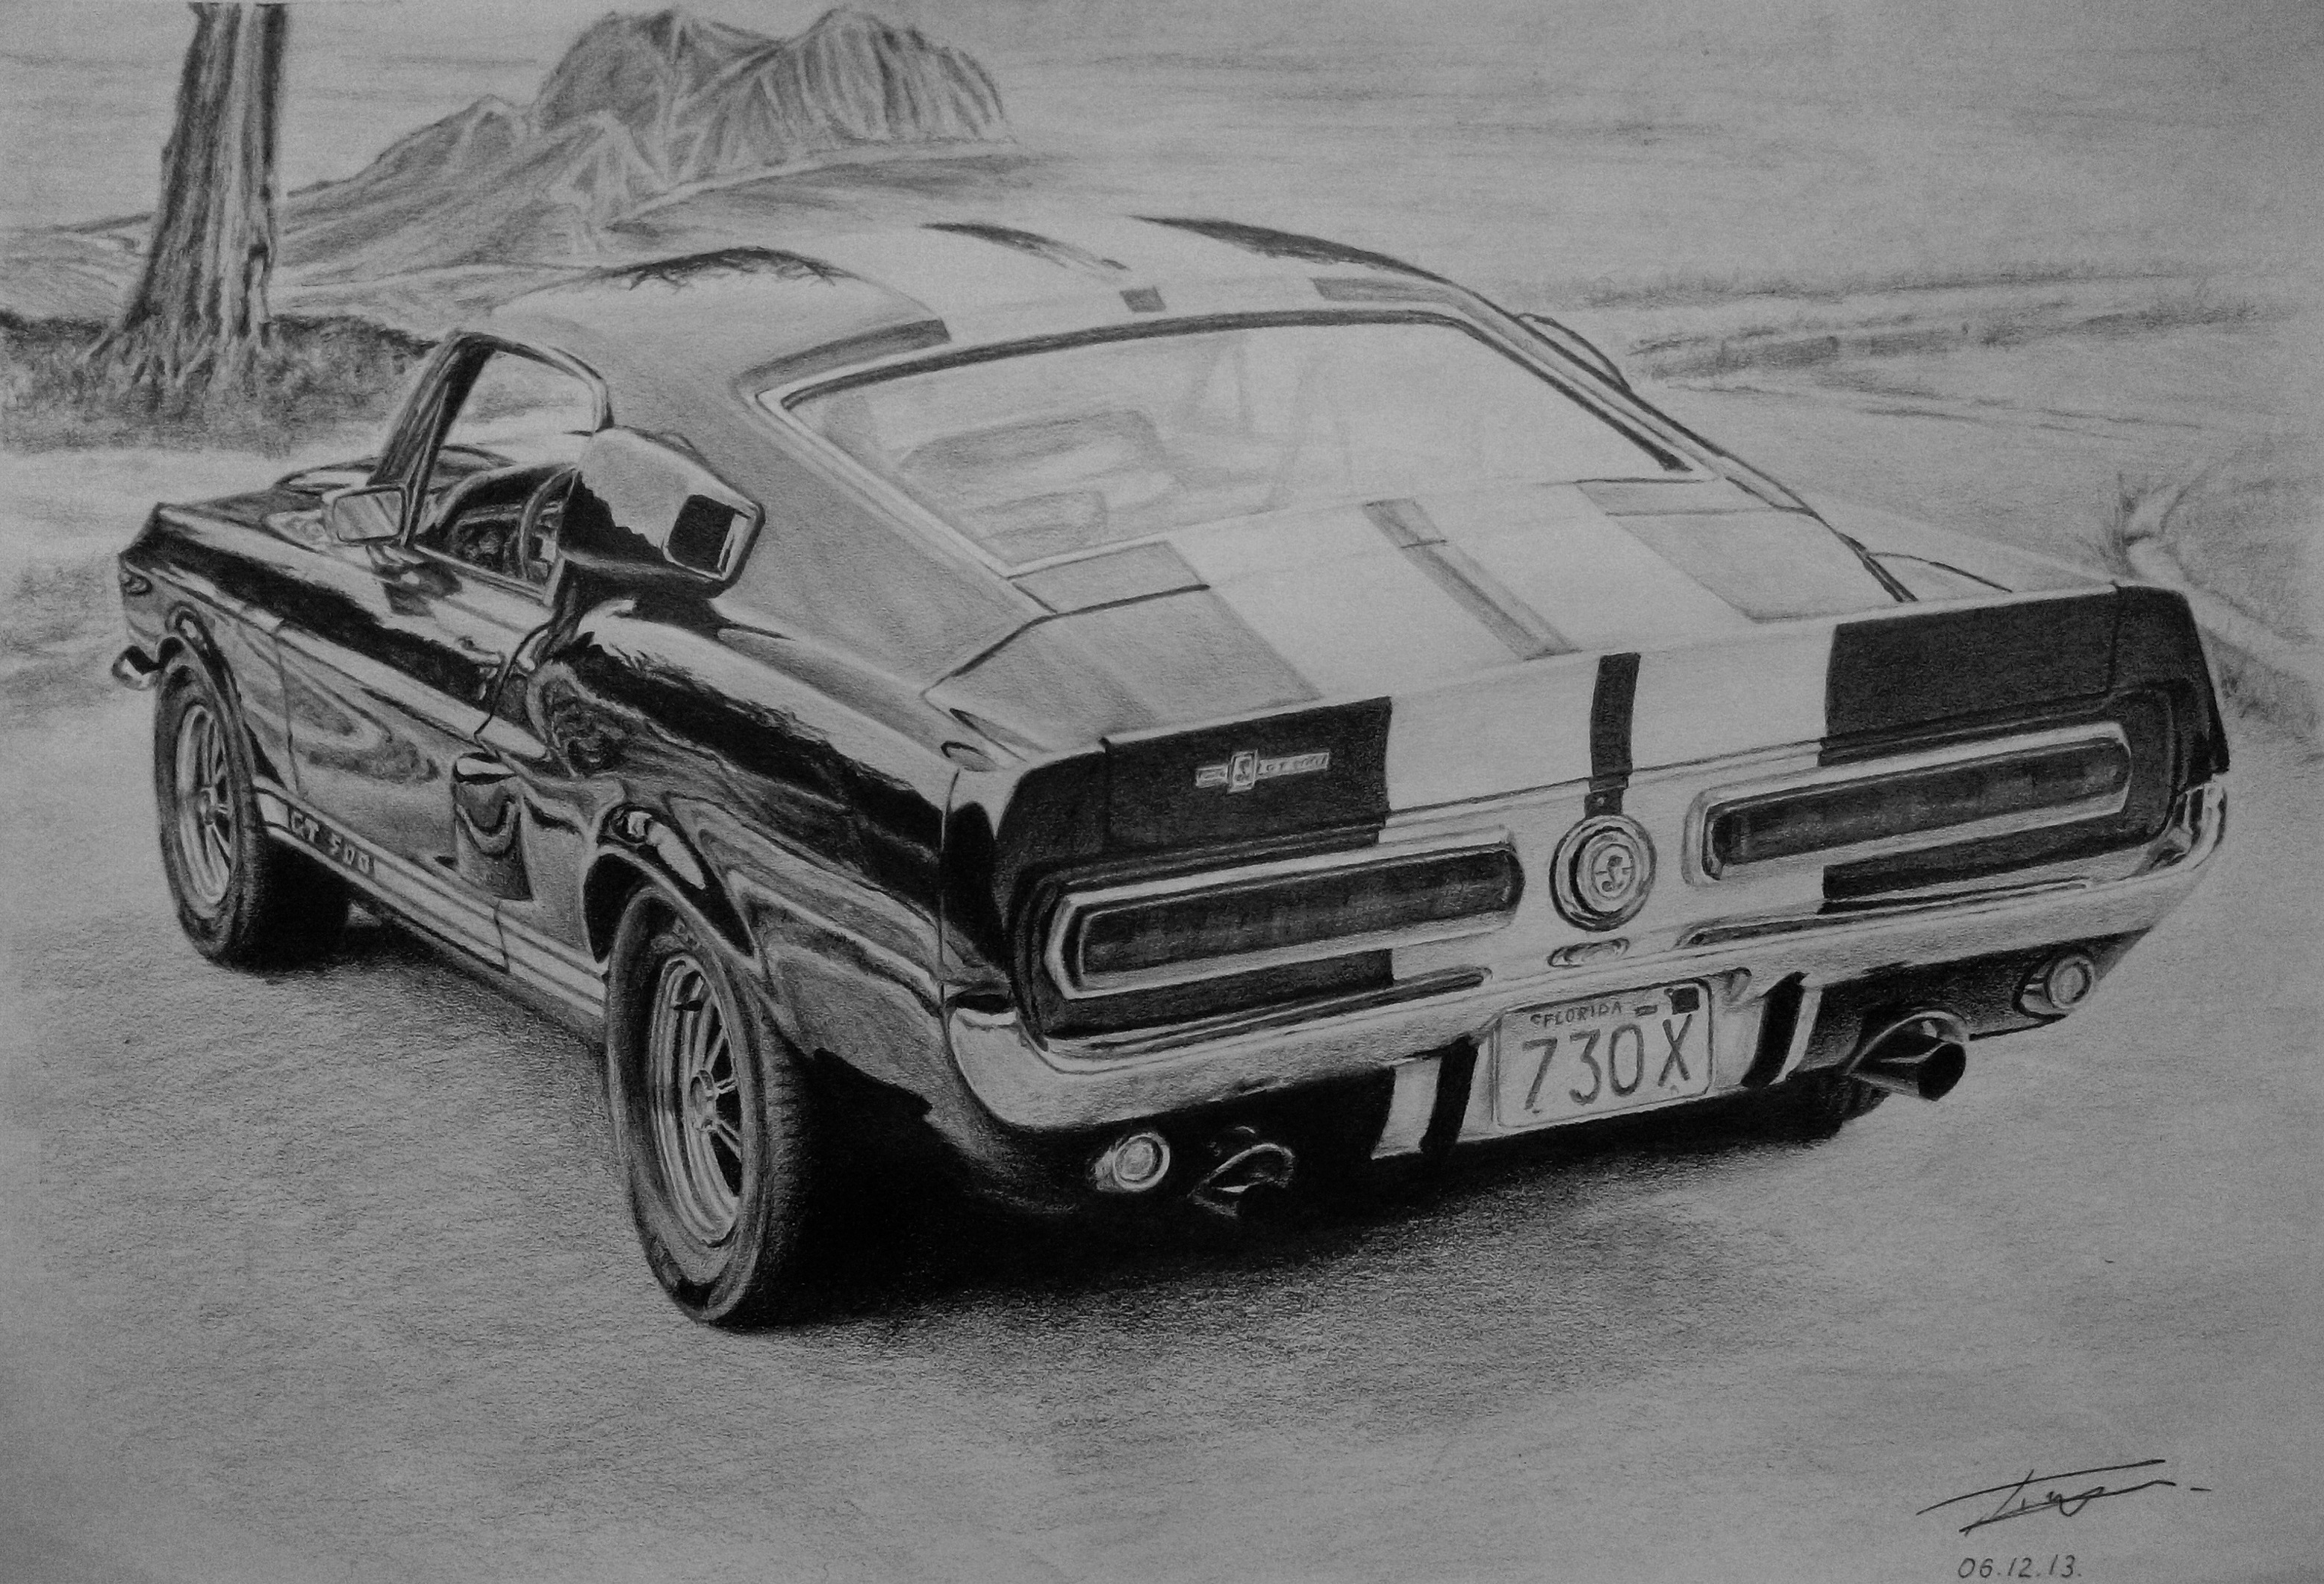 ford mustang 1967 drawing images free download fog light wiring 1967 mustang instrument panel wiring diagram ford mustang 1967 drawing